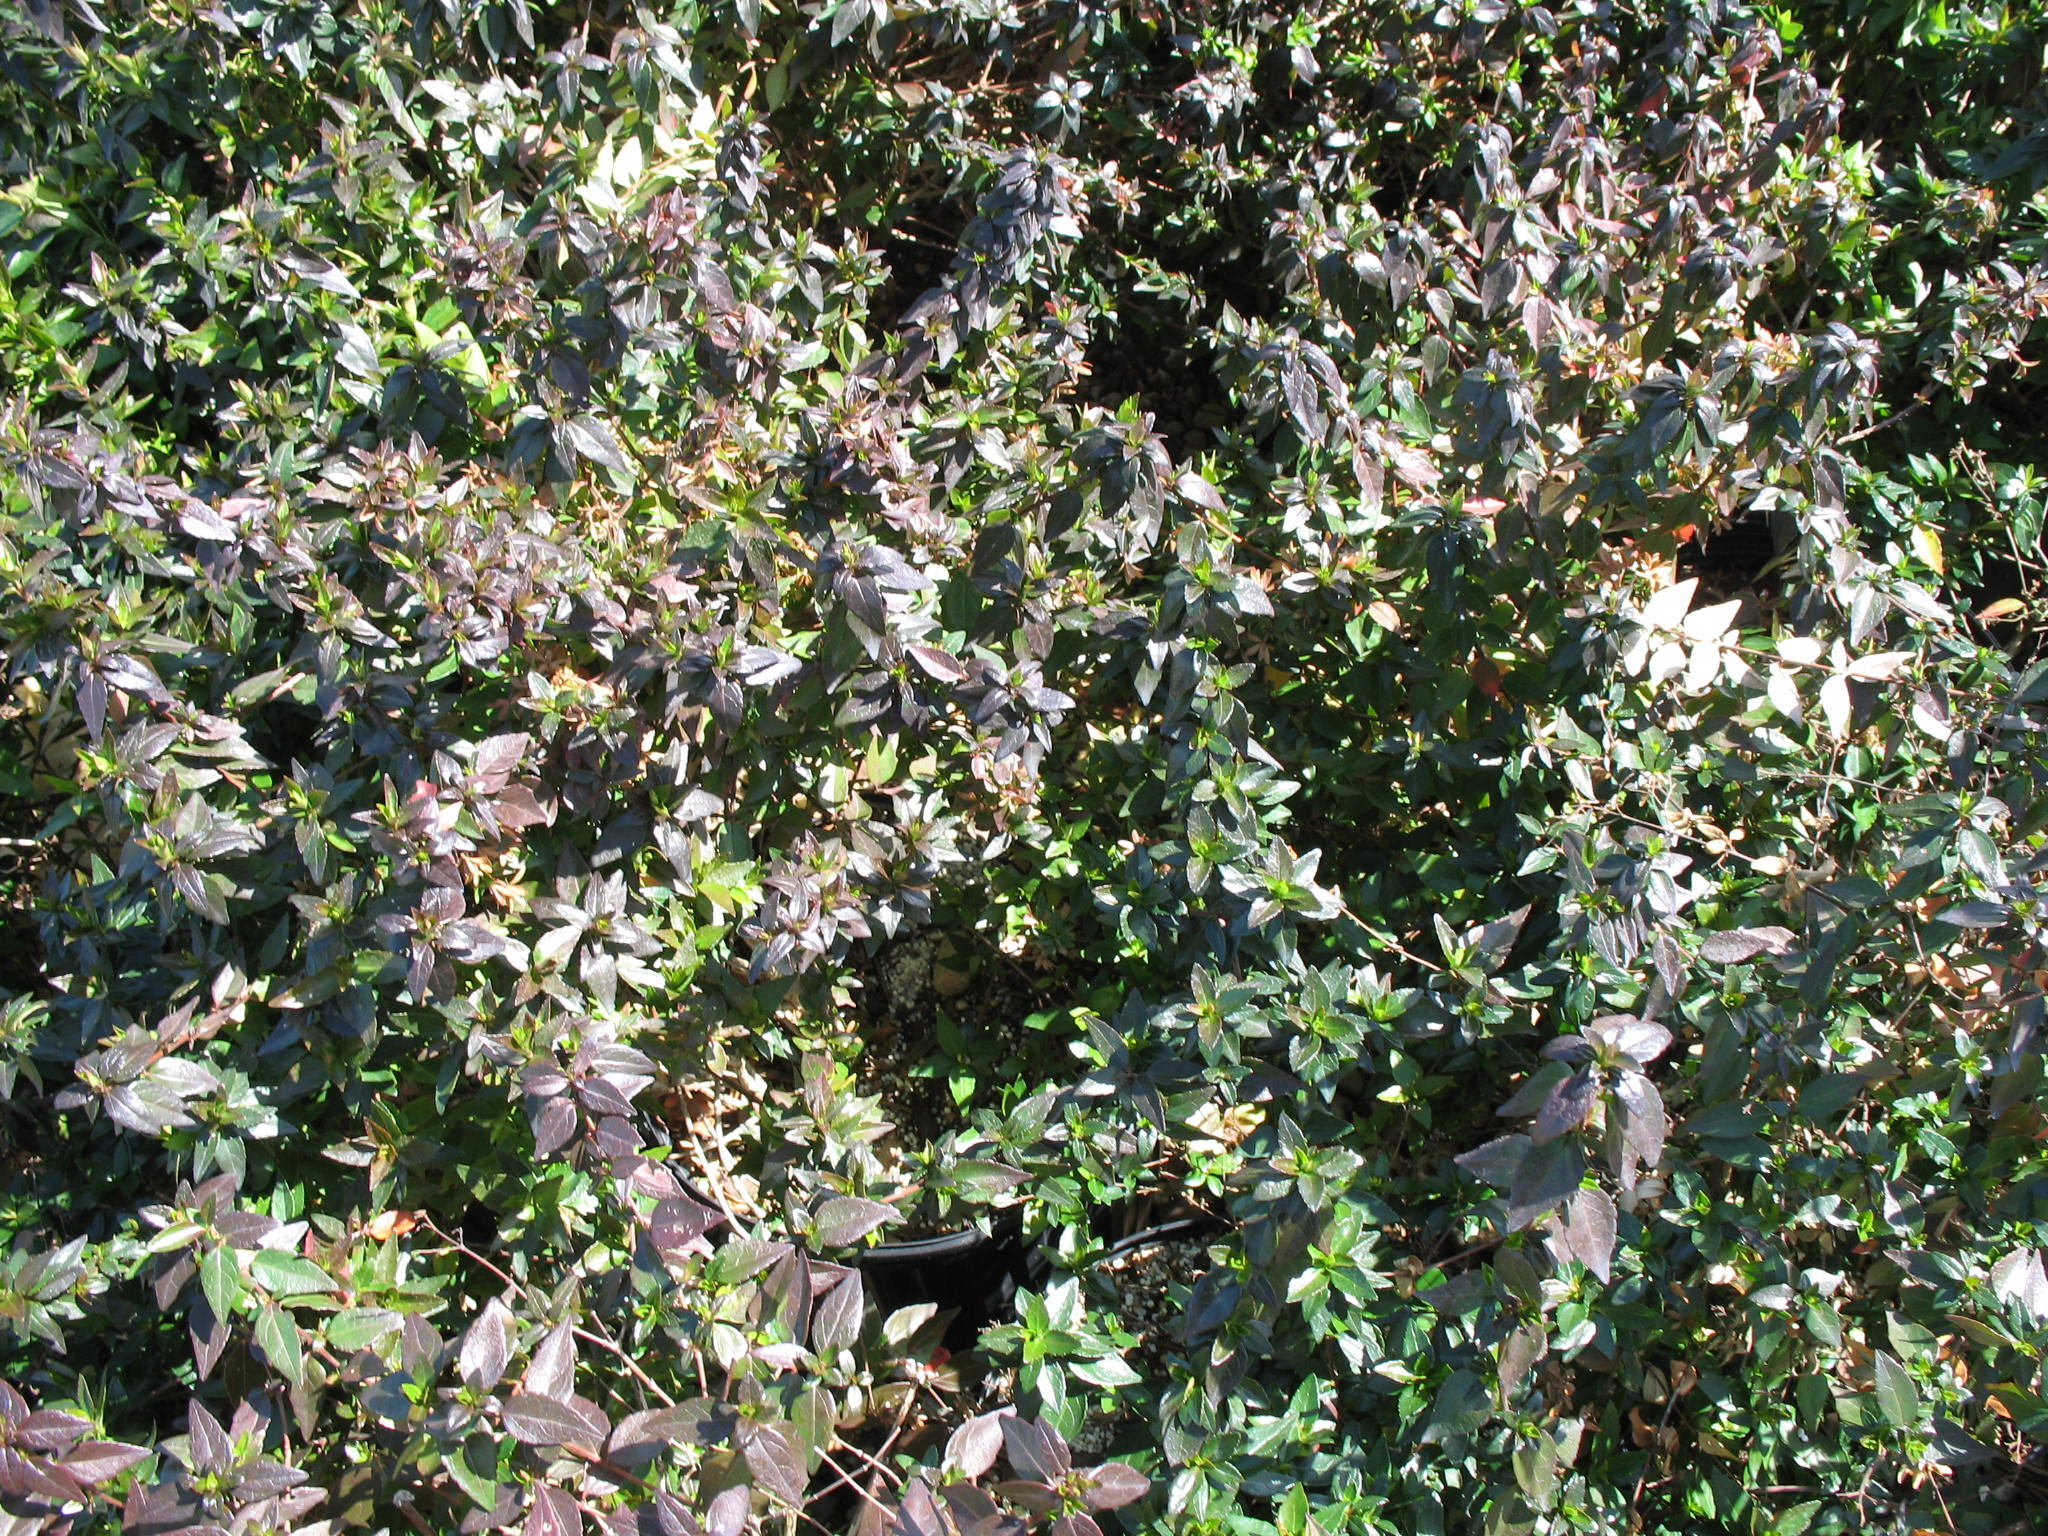 Abelia x grandiflora 'Little Richard'  / Abelia x grandiflora 'Little Richard'